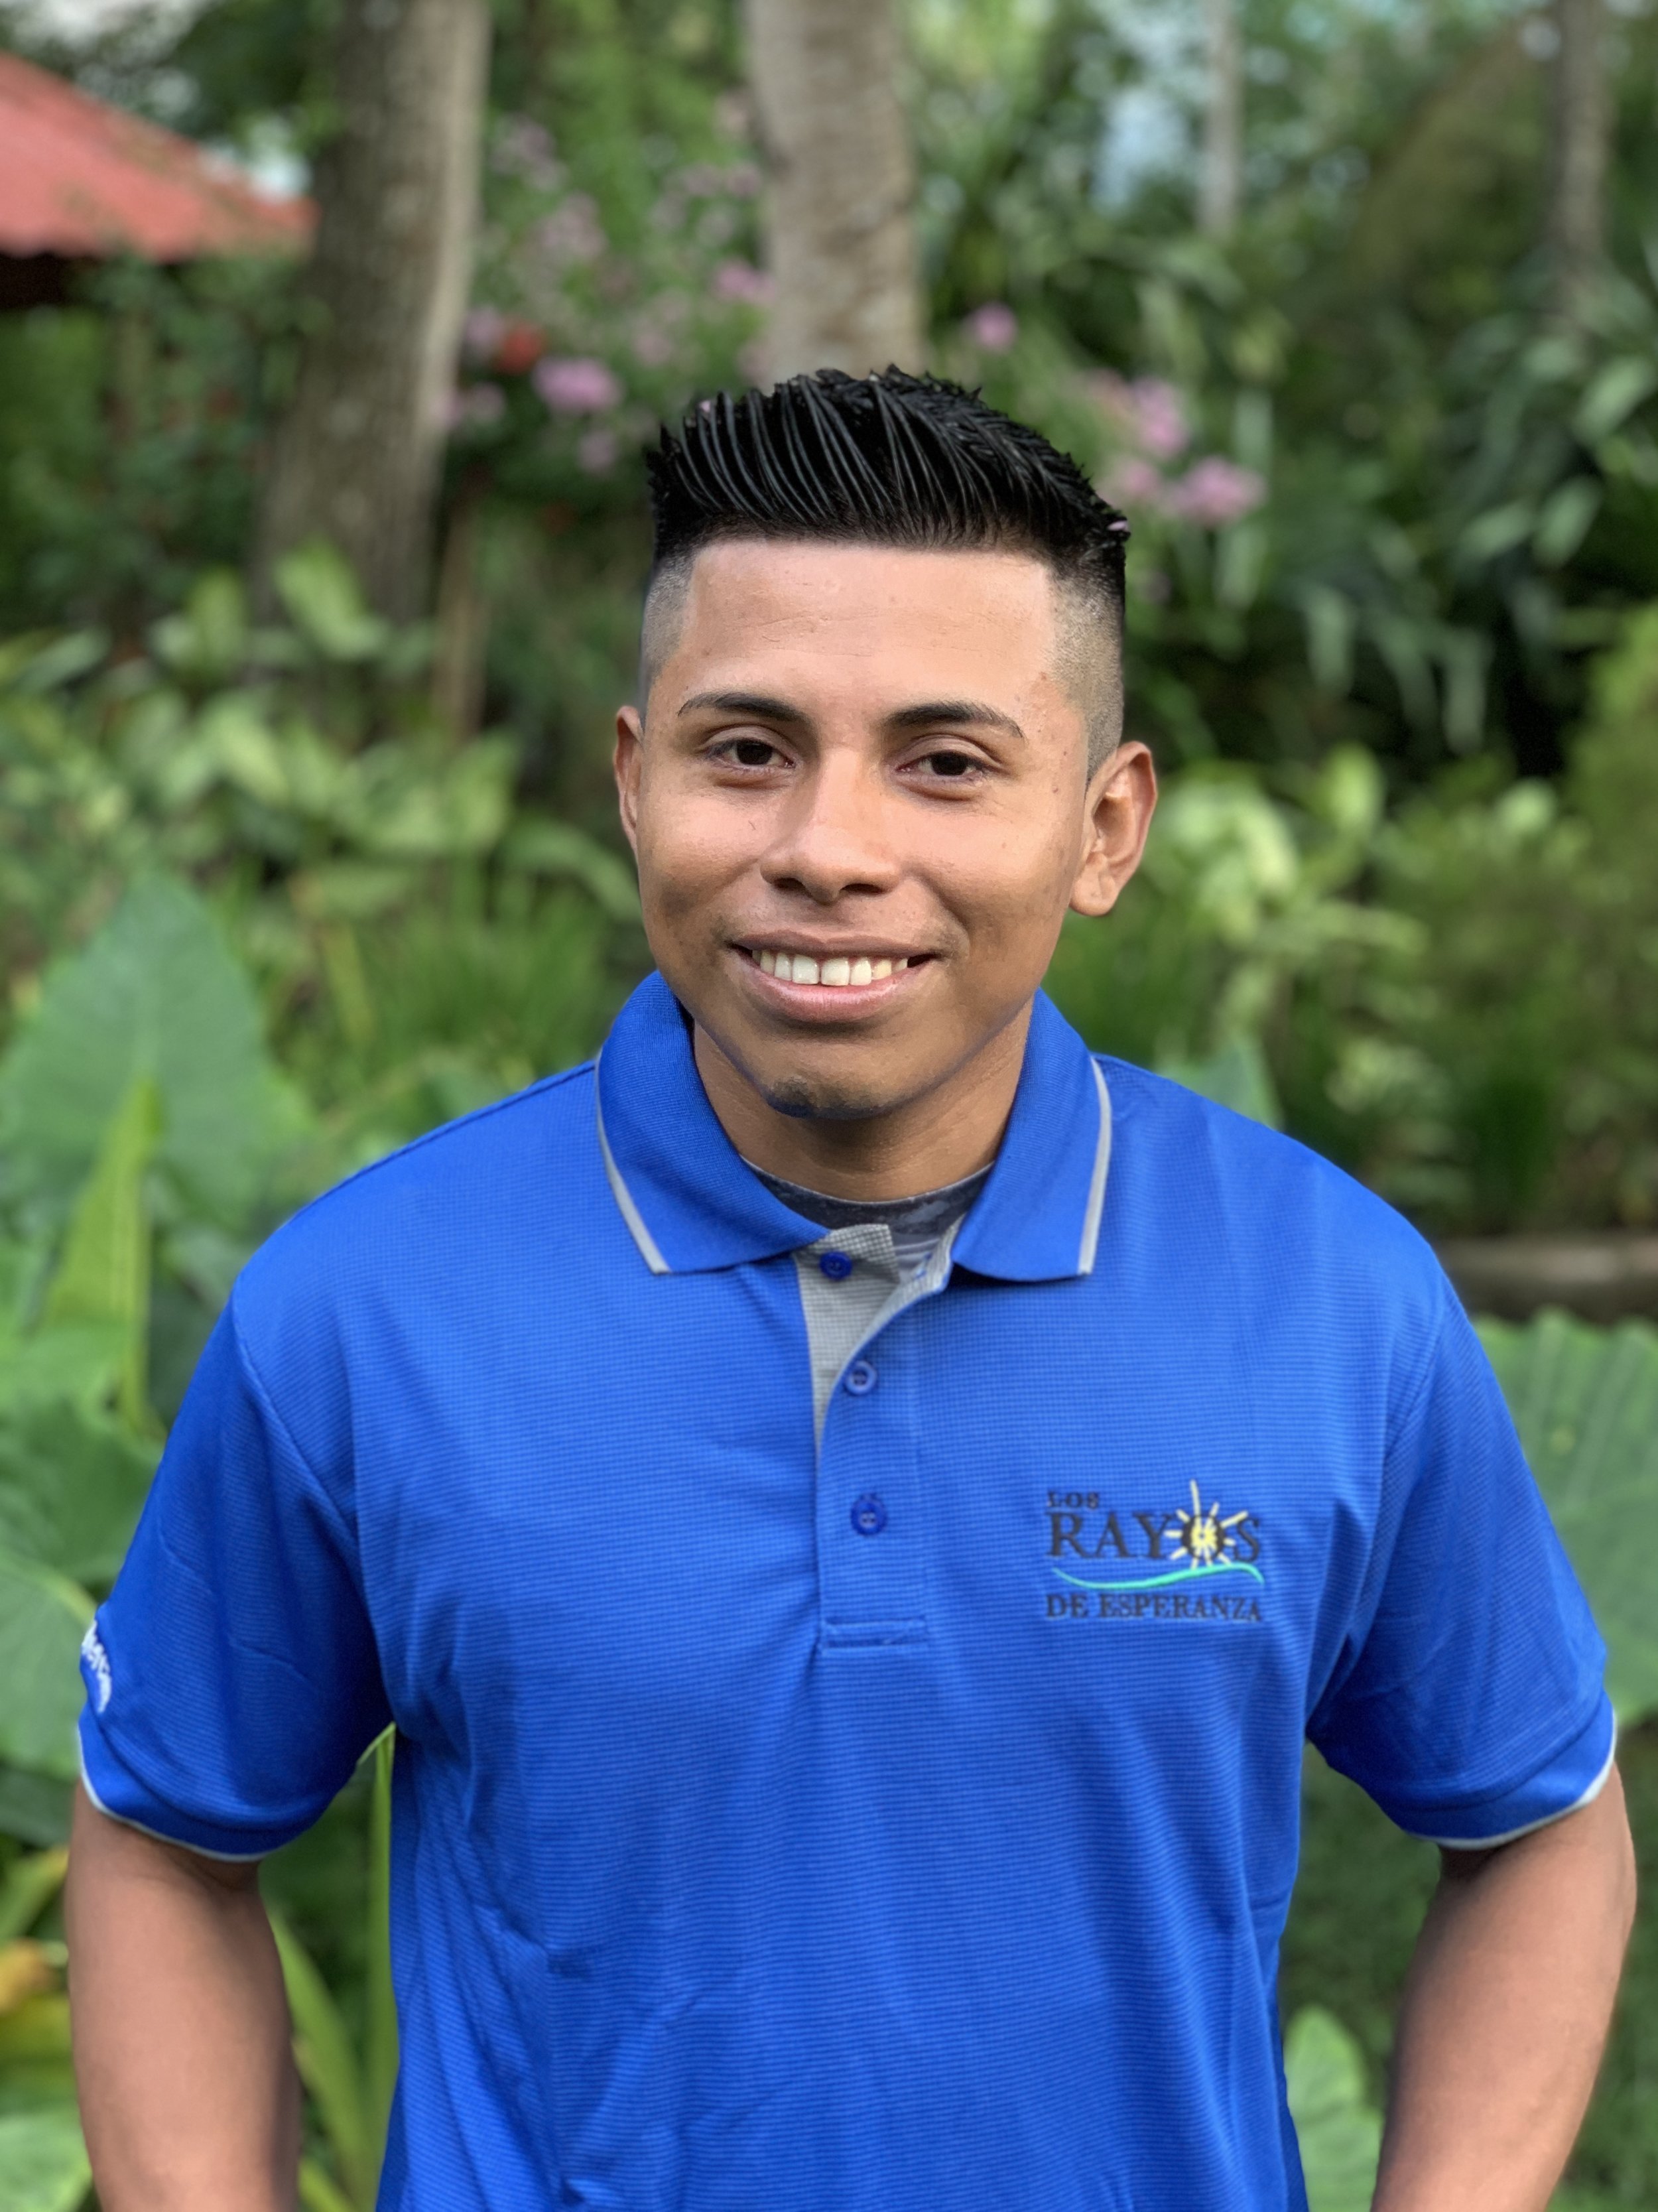 Evelio MercadoNight Security Guard - Evelio is our nighttime security guard. All visitors at LRdE volunteers can sleep peacefully because of the work of this humble man.Evelio is a hard-working, responsible man and is very loyal. He is a pleasure to be around and is always smiling.